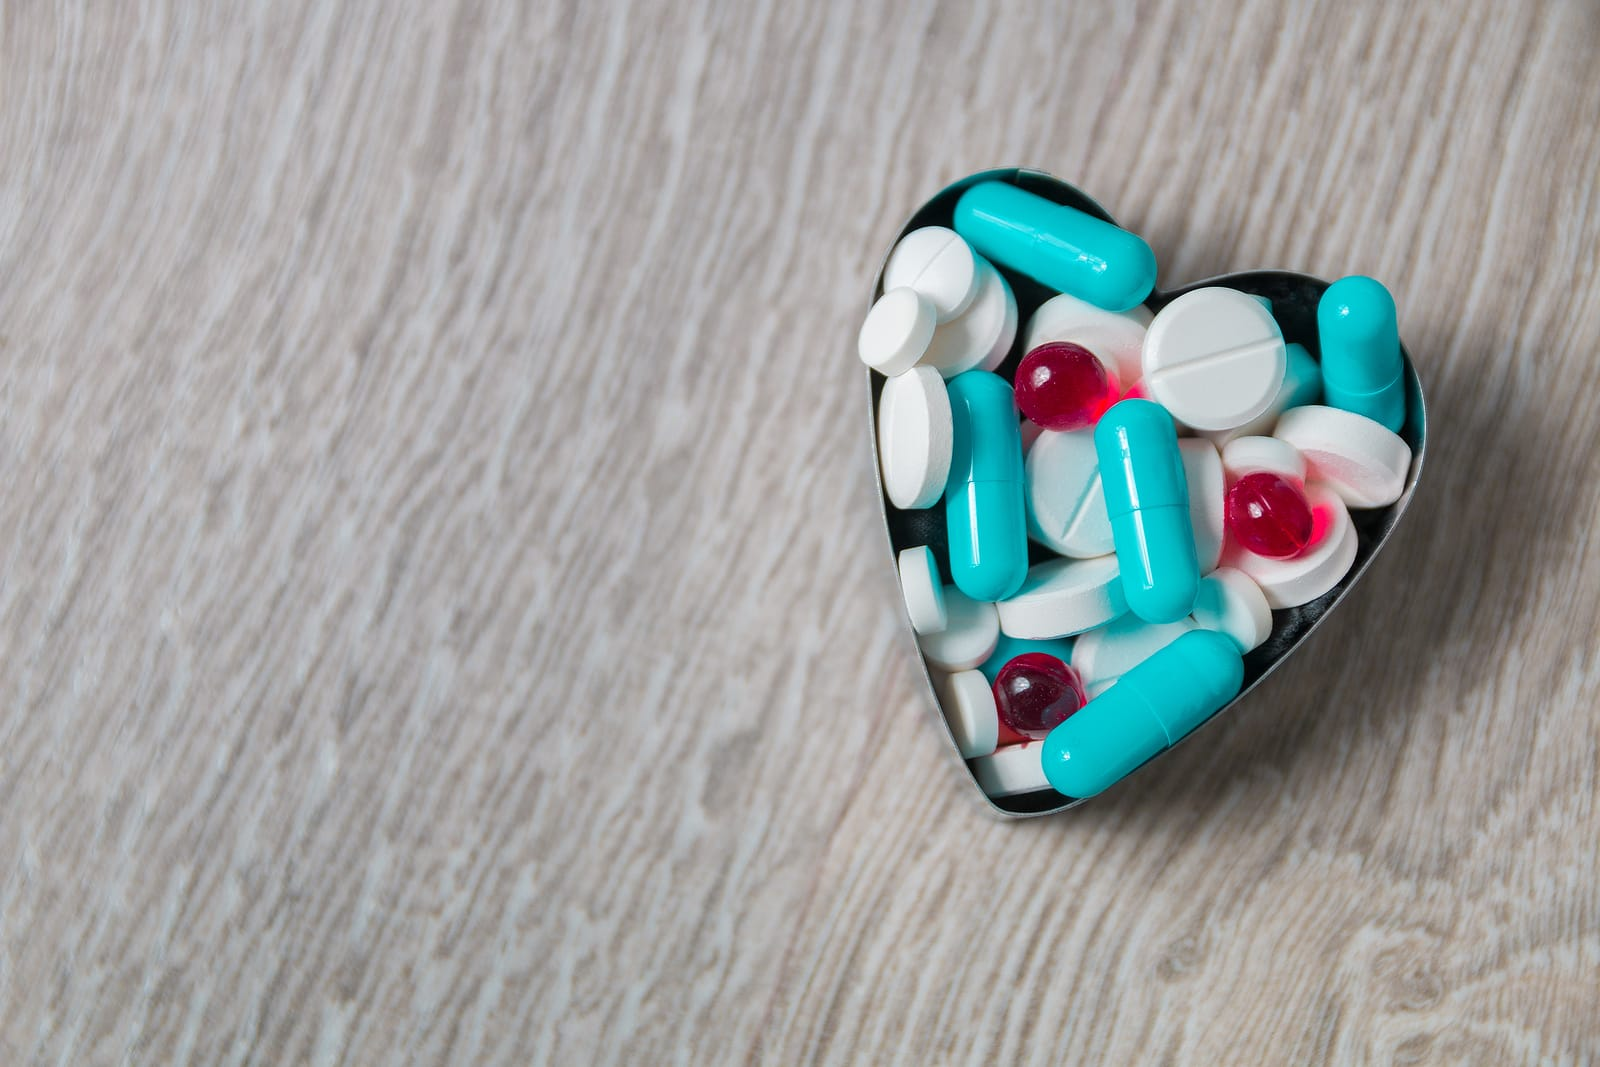 Dealing with medication in recovery